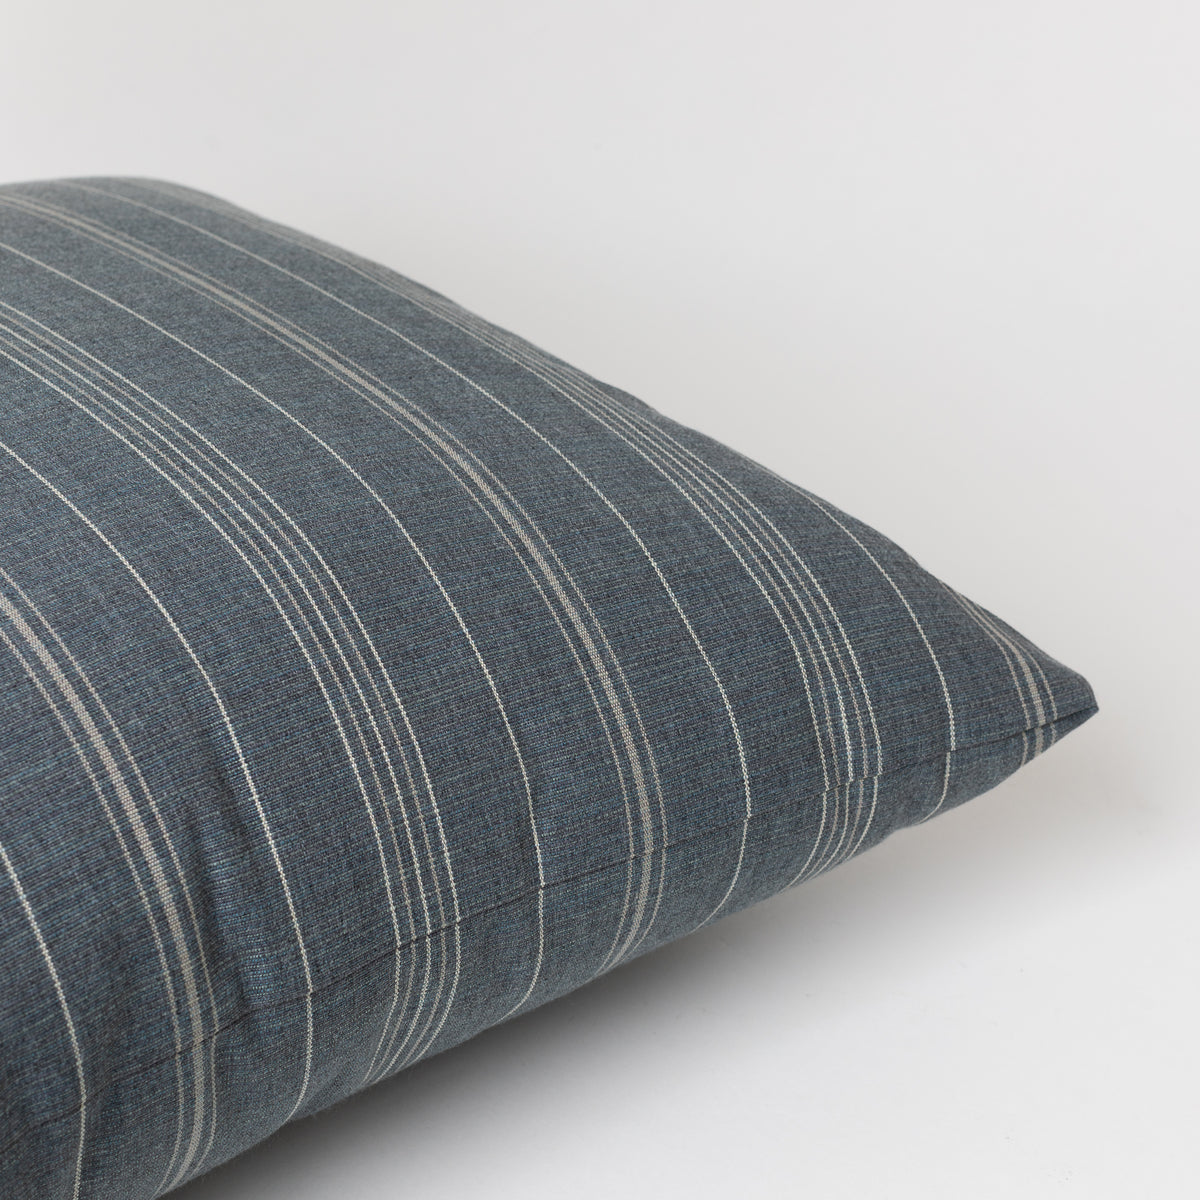 Load image into Gallery viewer, Sutton Stripe Pillow in Gunmetal - Pillows - Designer – Shoppe Amber Interiors